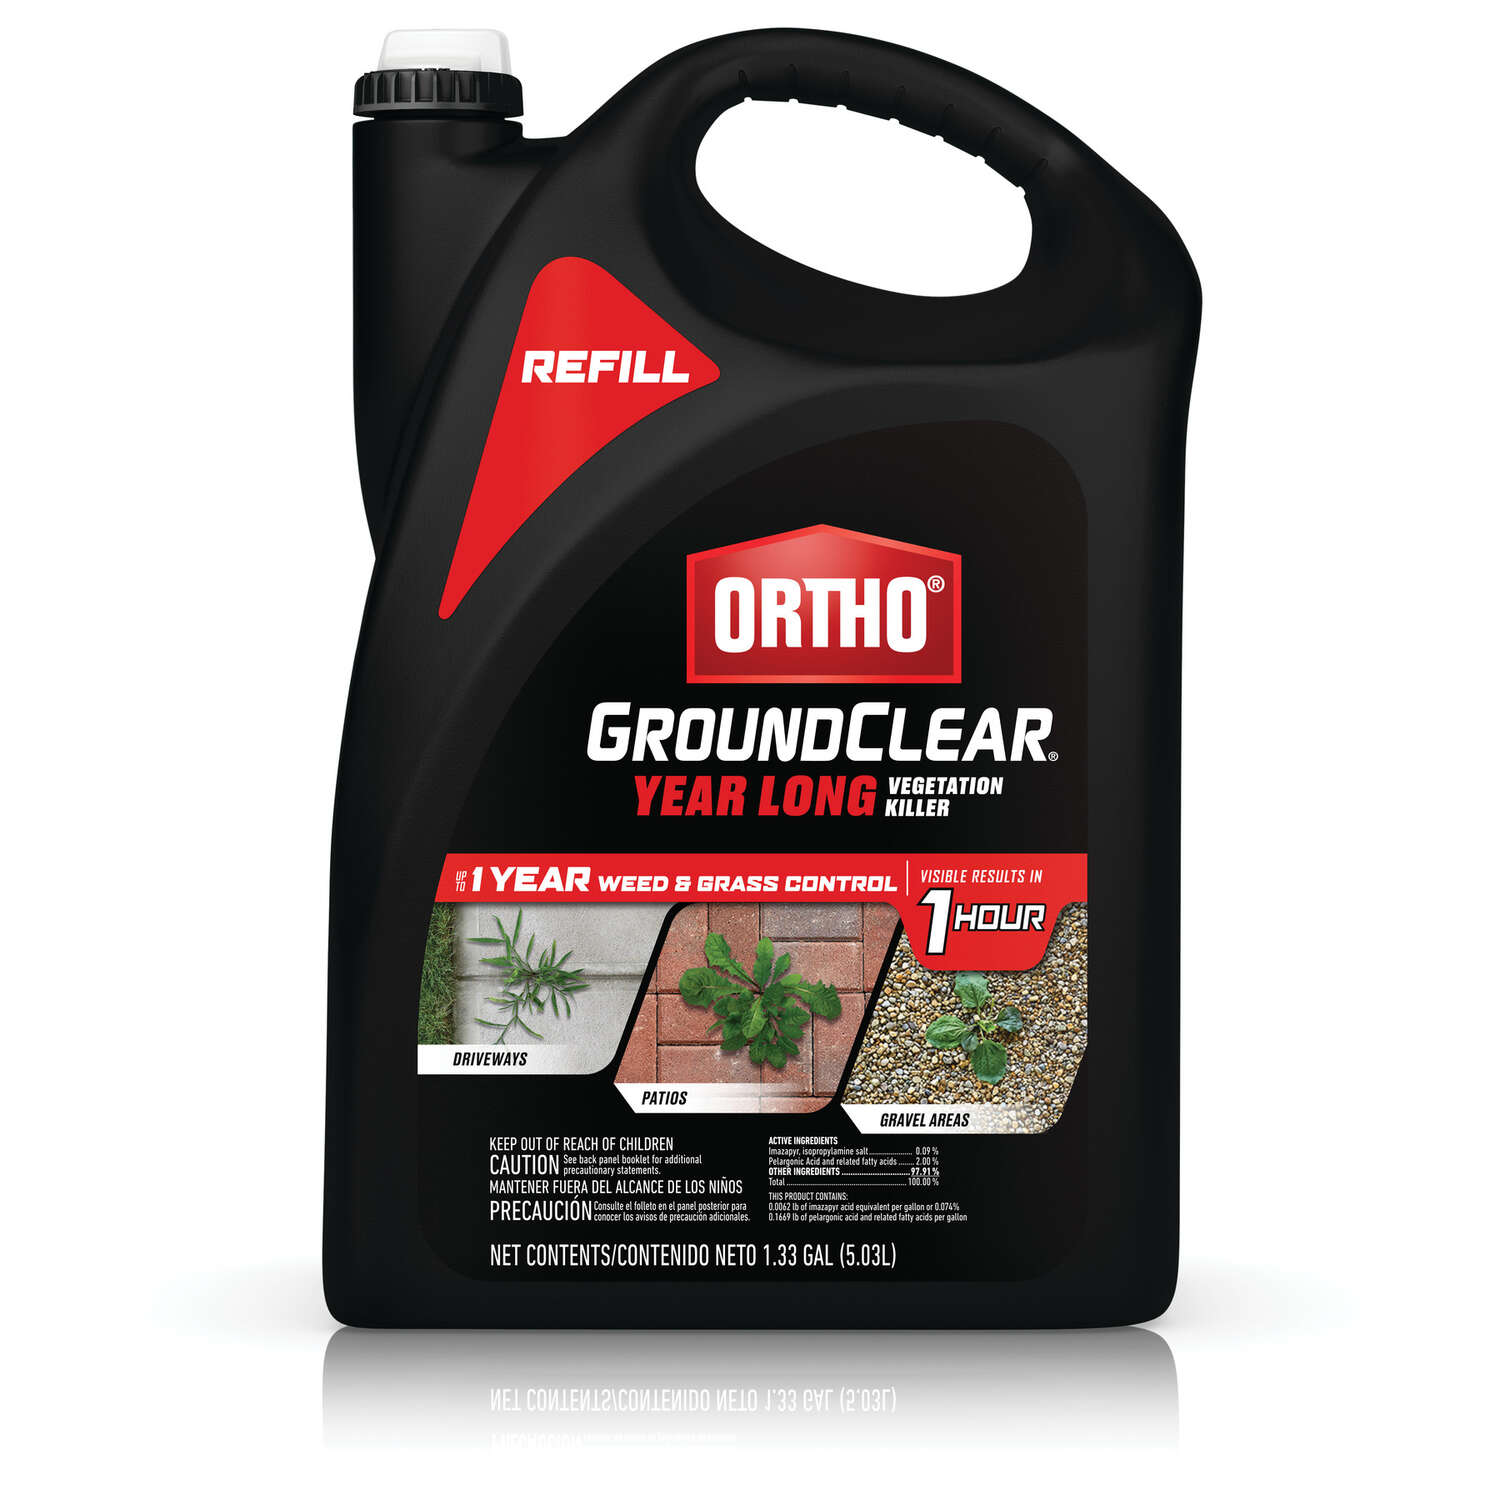 Ortho  GroundClear  Vegetation Killer  RTU Liquid  1.33 gal.